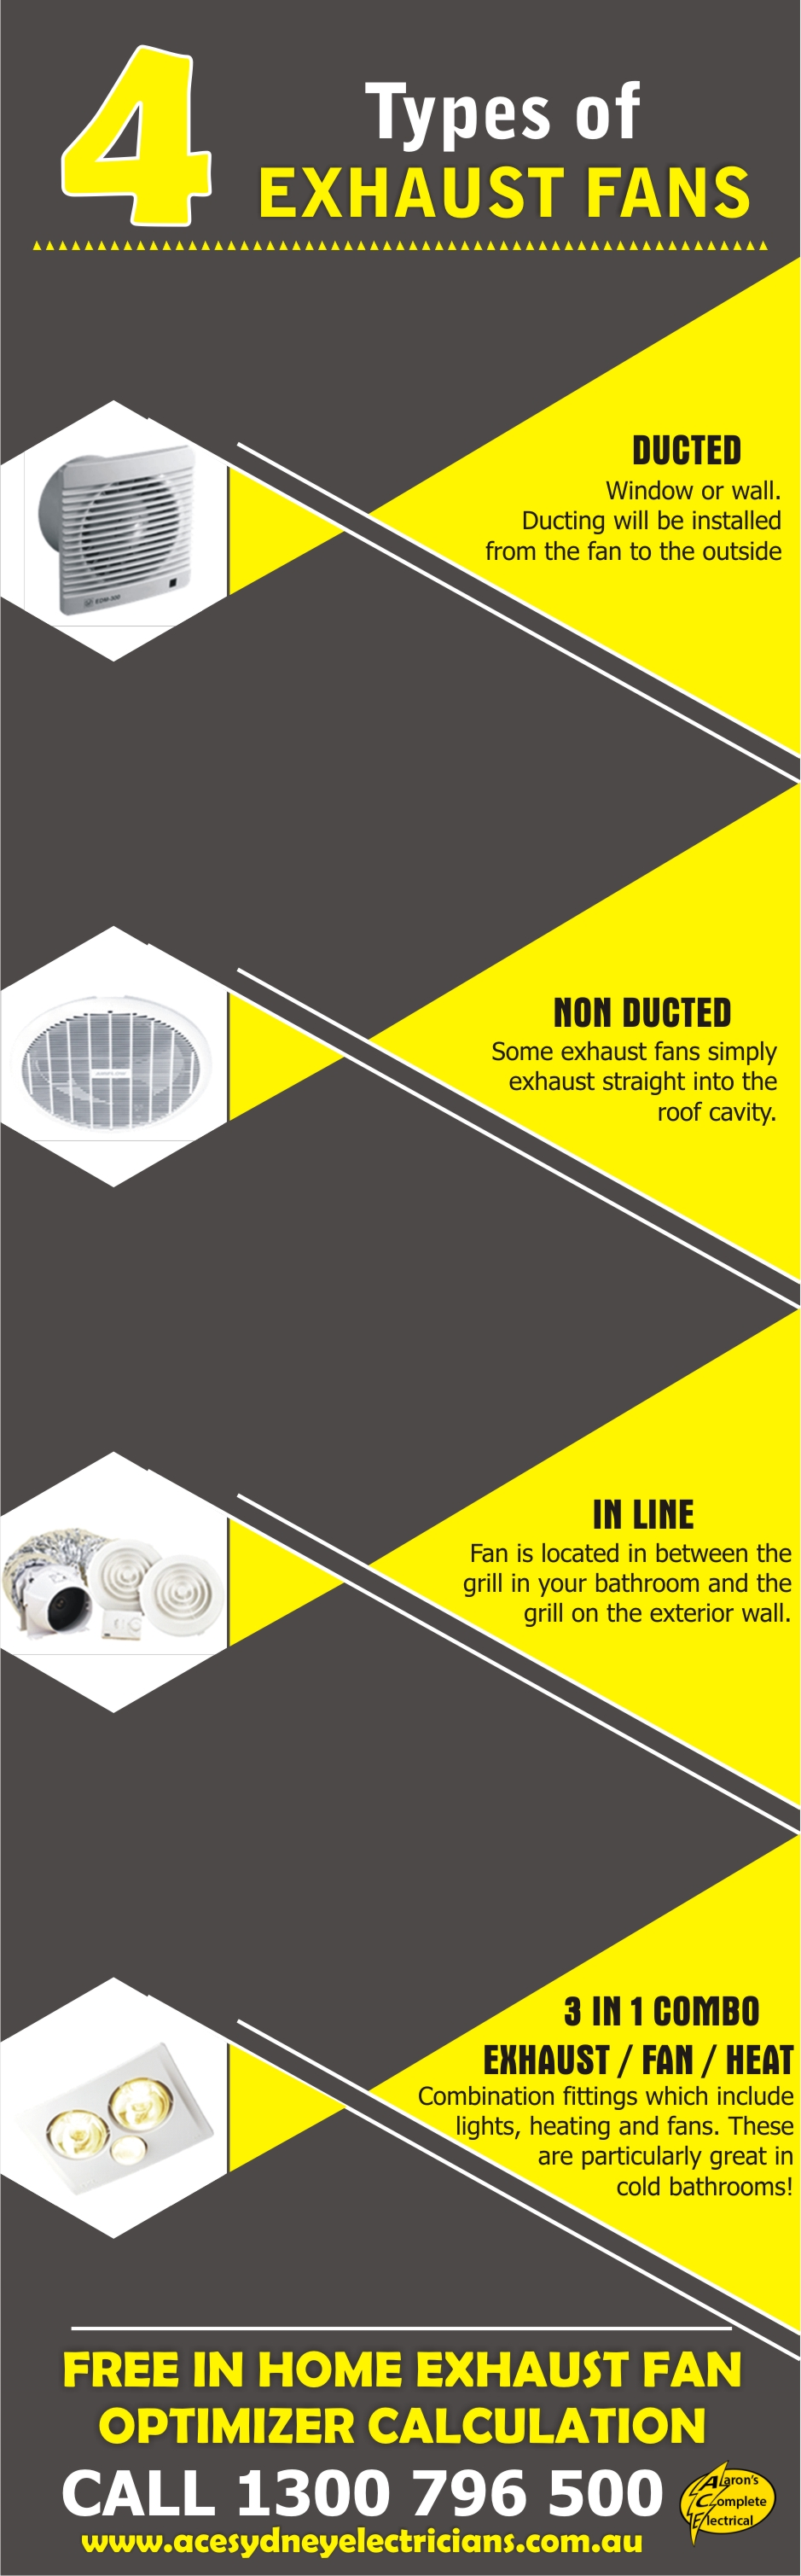 4 Main Types Of Exhaust Fans